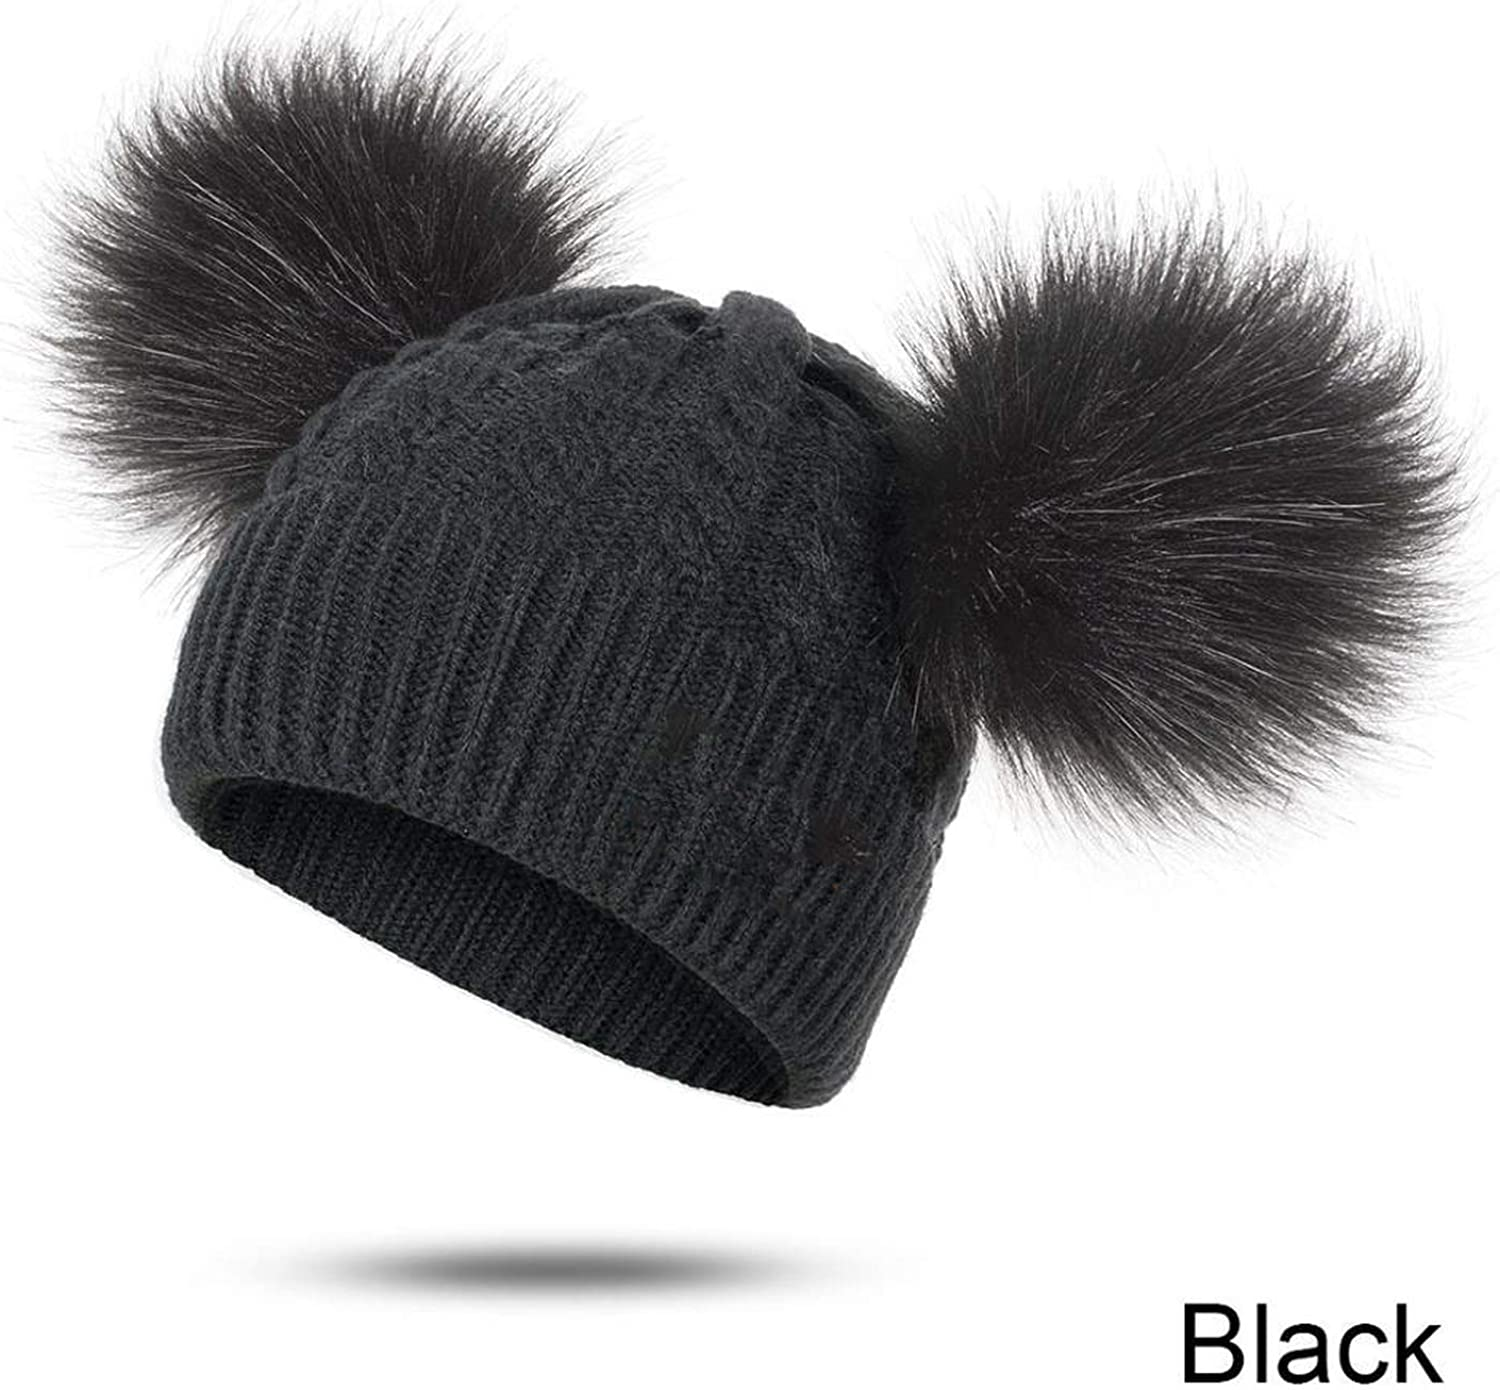 Fur Faux Pompom Caps, Warm Winter Fur Ball Hat/&Scarf Sets for Kids Girls 2 Pieces Set Knitted Unisex Hat